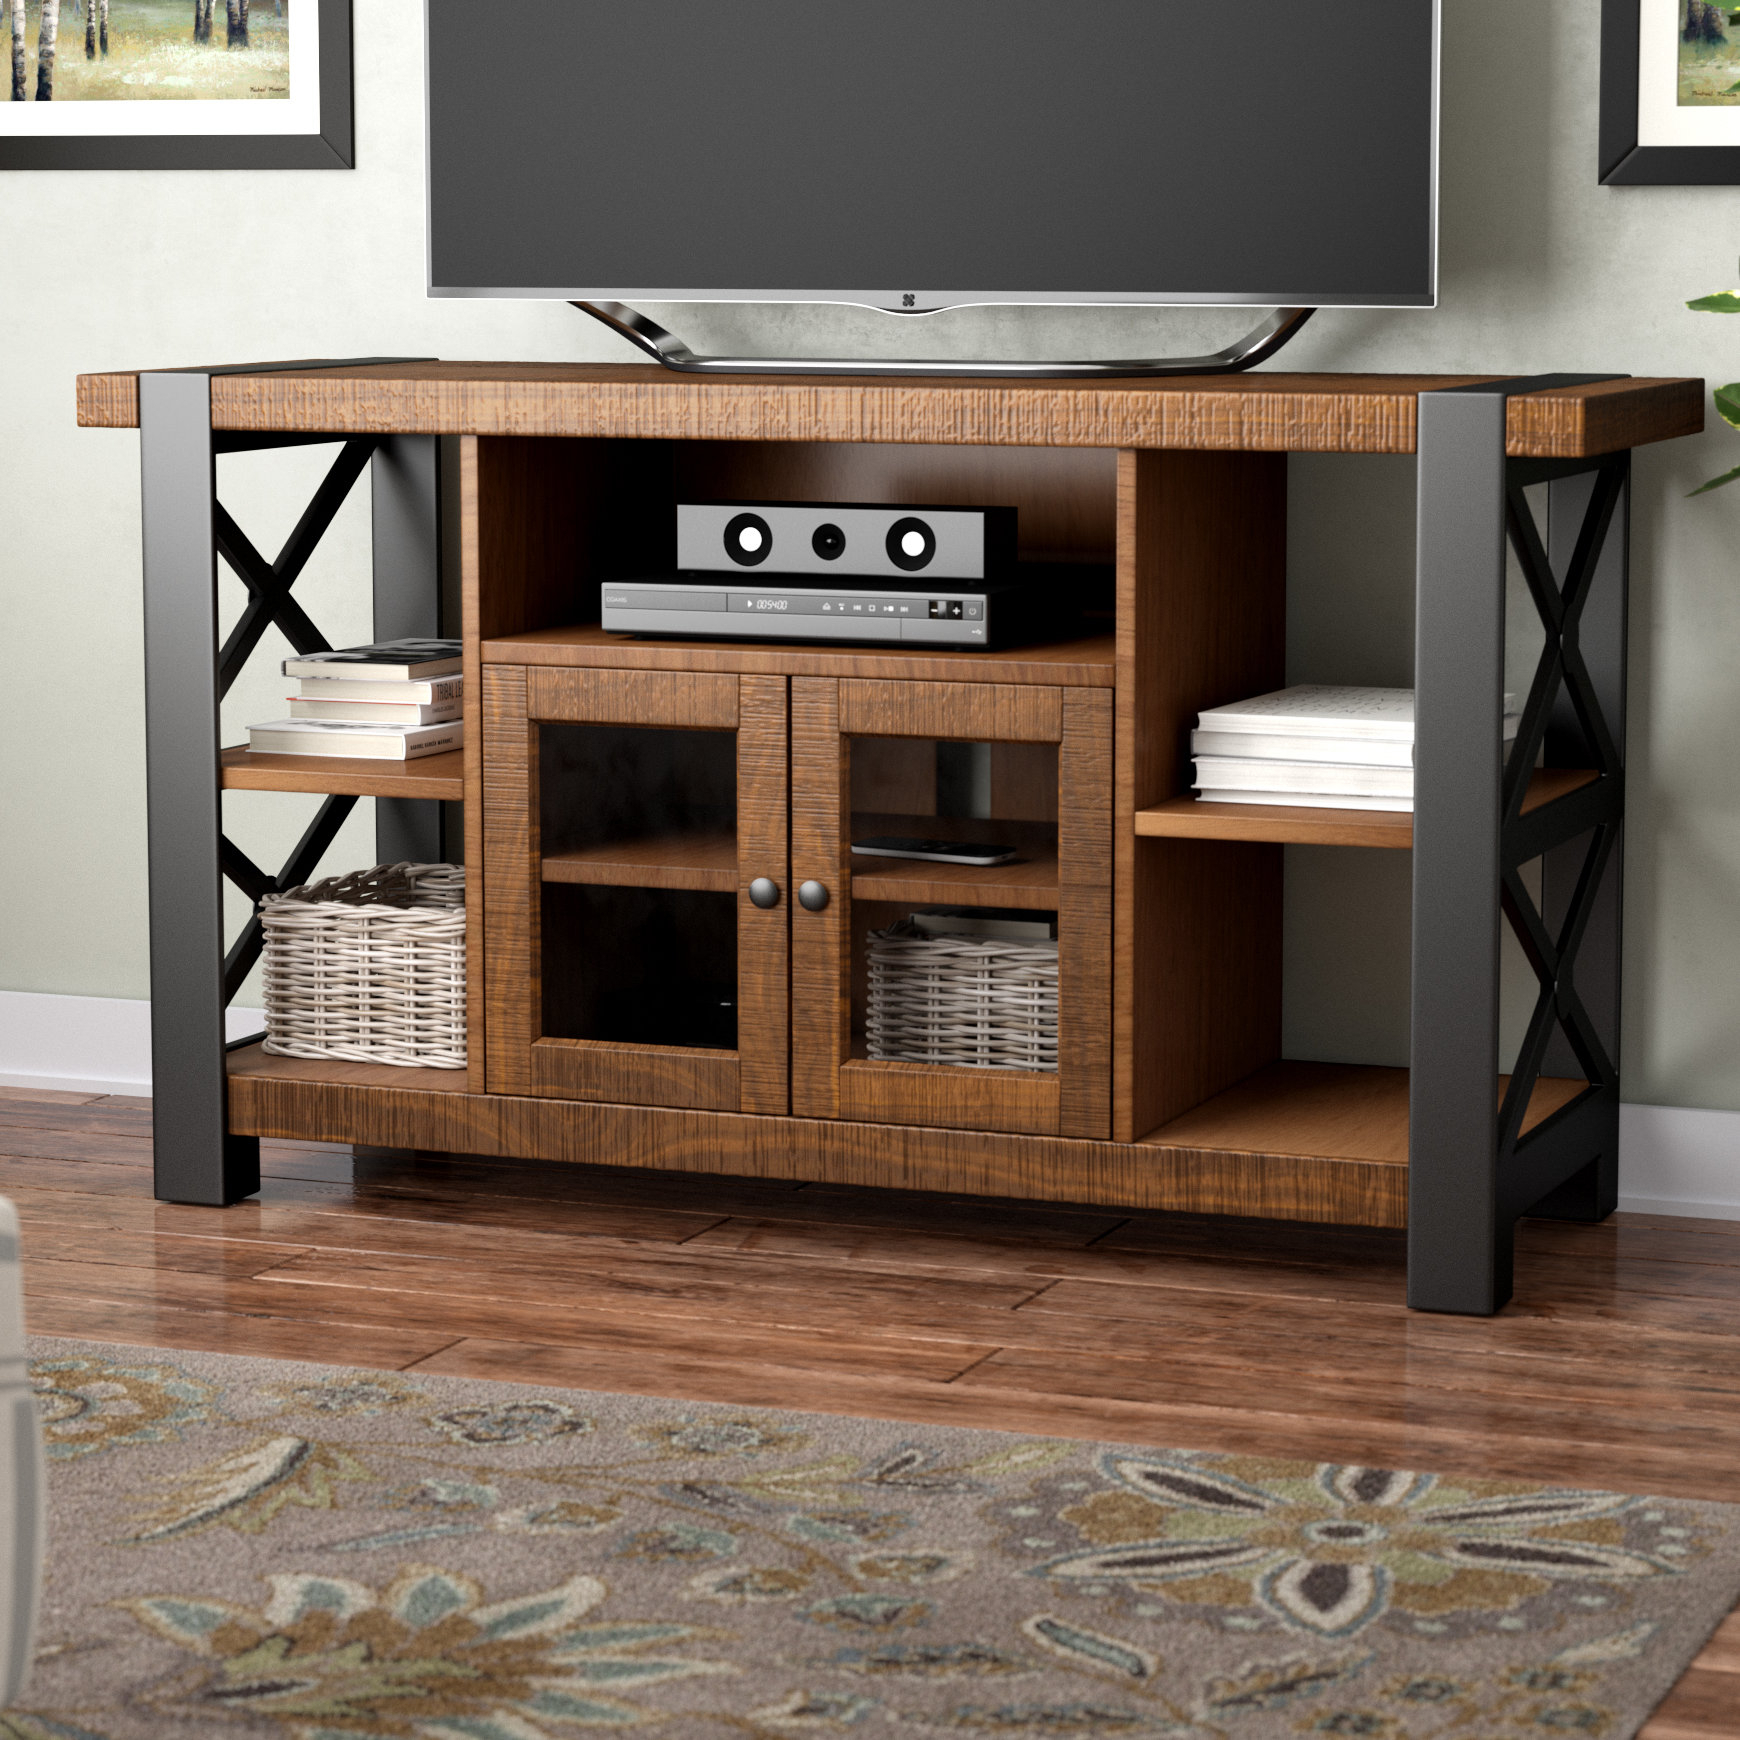 Tv Stands & Entertainment Centers You'll Love | Wayfair With Sinclair Blue 64 Inch Tv Stands (View 10 of 30)